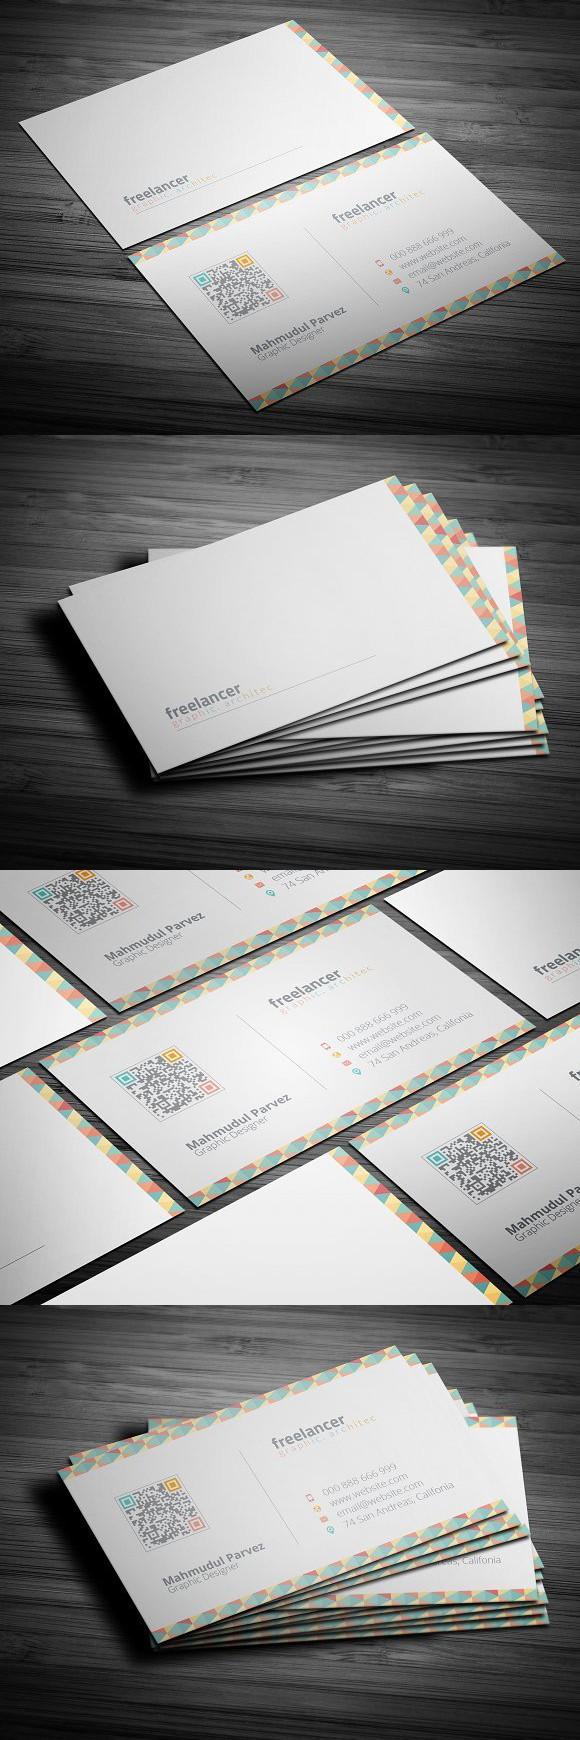 Gravatac creative business card | Business cards, Card templates and ...